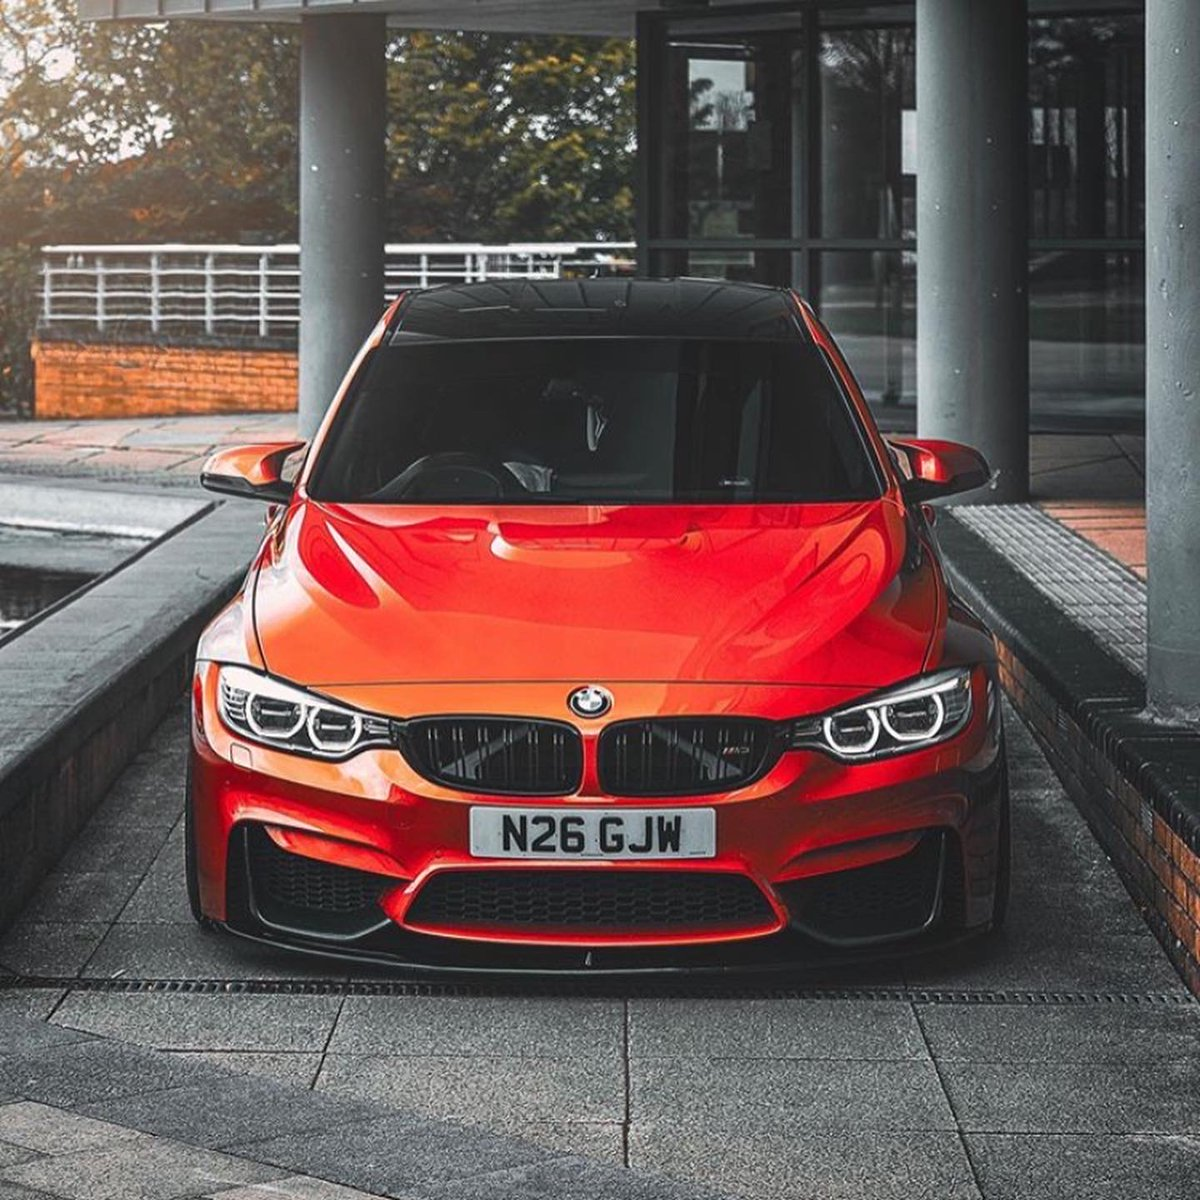 We have loved seeing your photos of your #BMW's at home. Here are some great photographs from Armughan Khan and Anto. Send us a picture of your #BMW at home to have your car featured here. pic.twitter.com/N0y2yinW2y